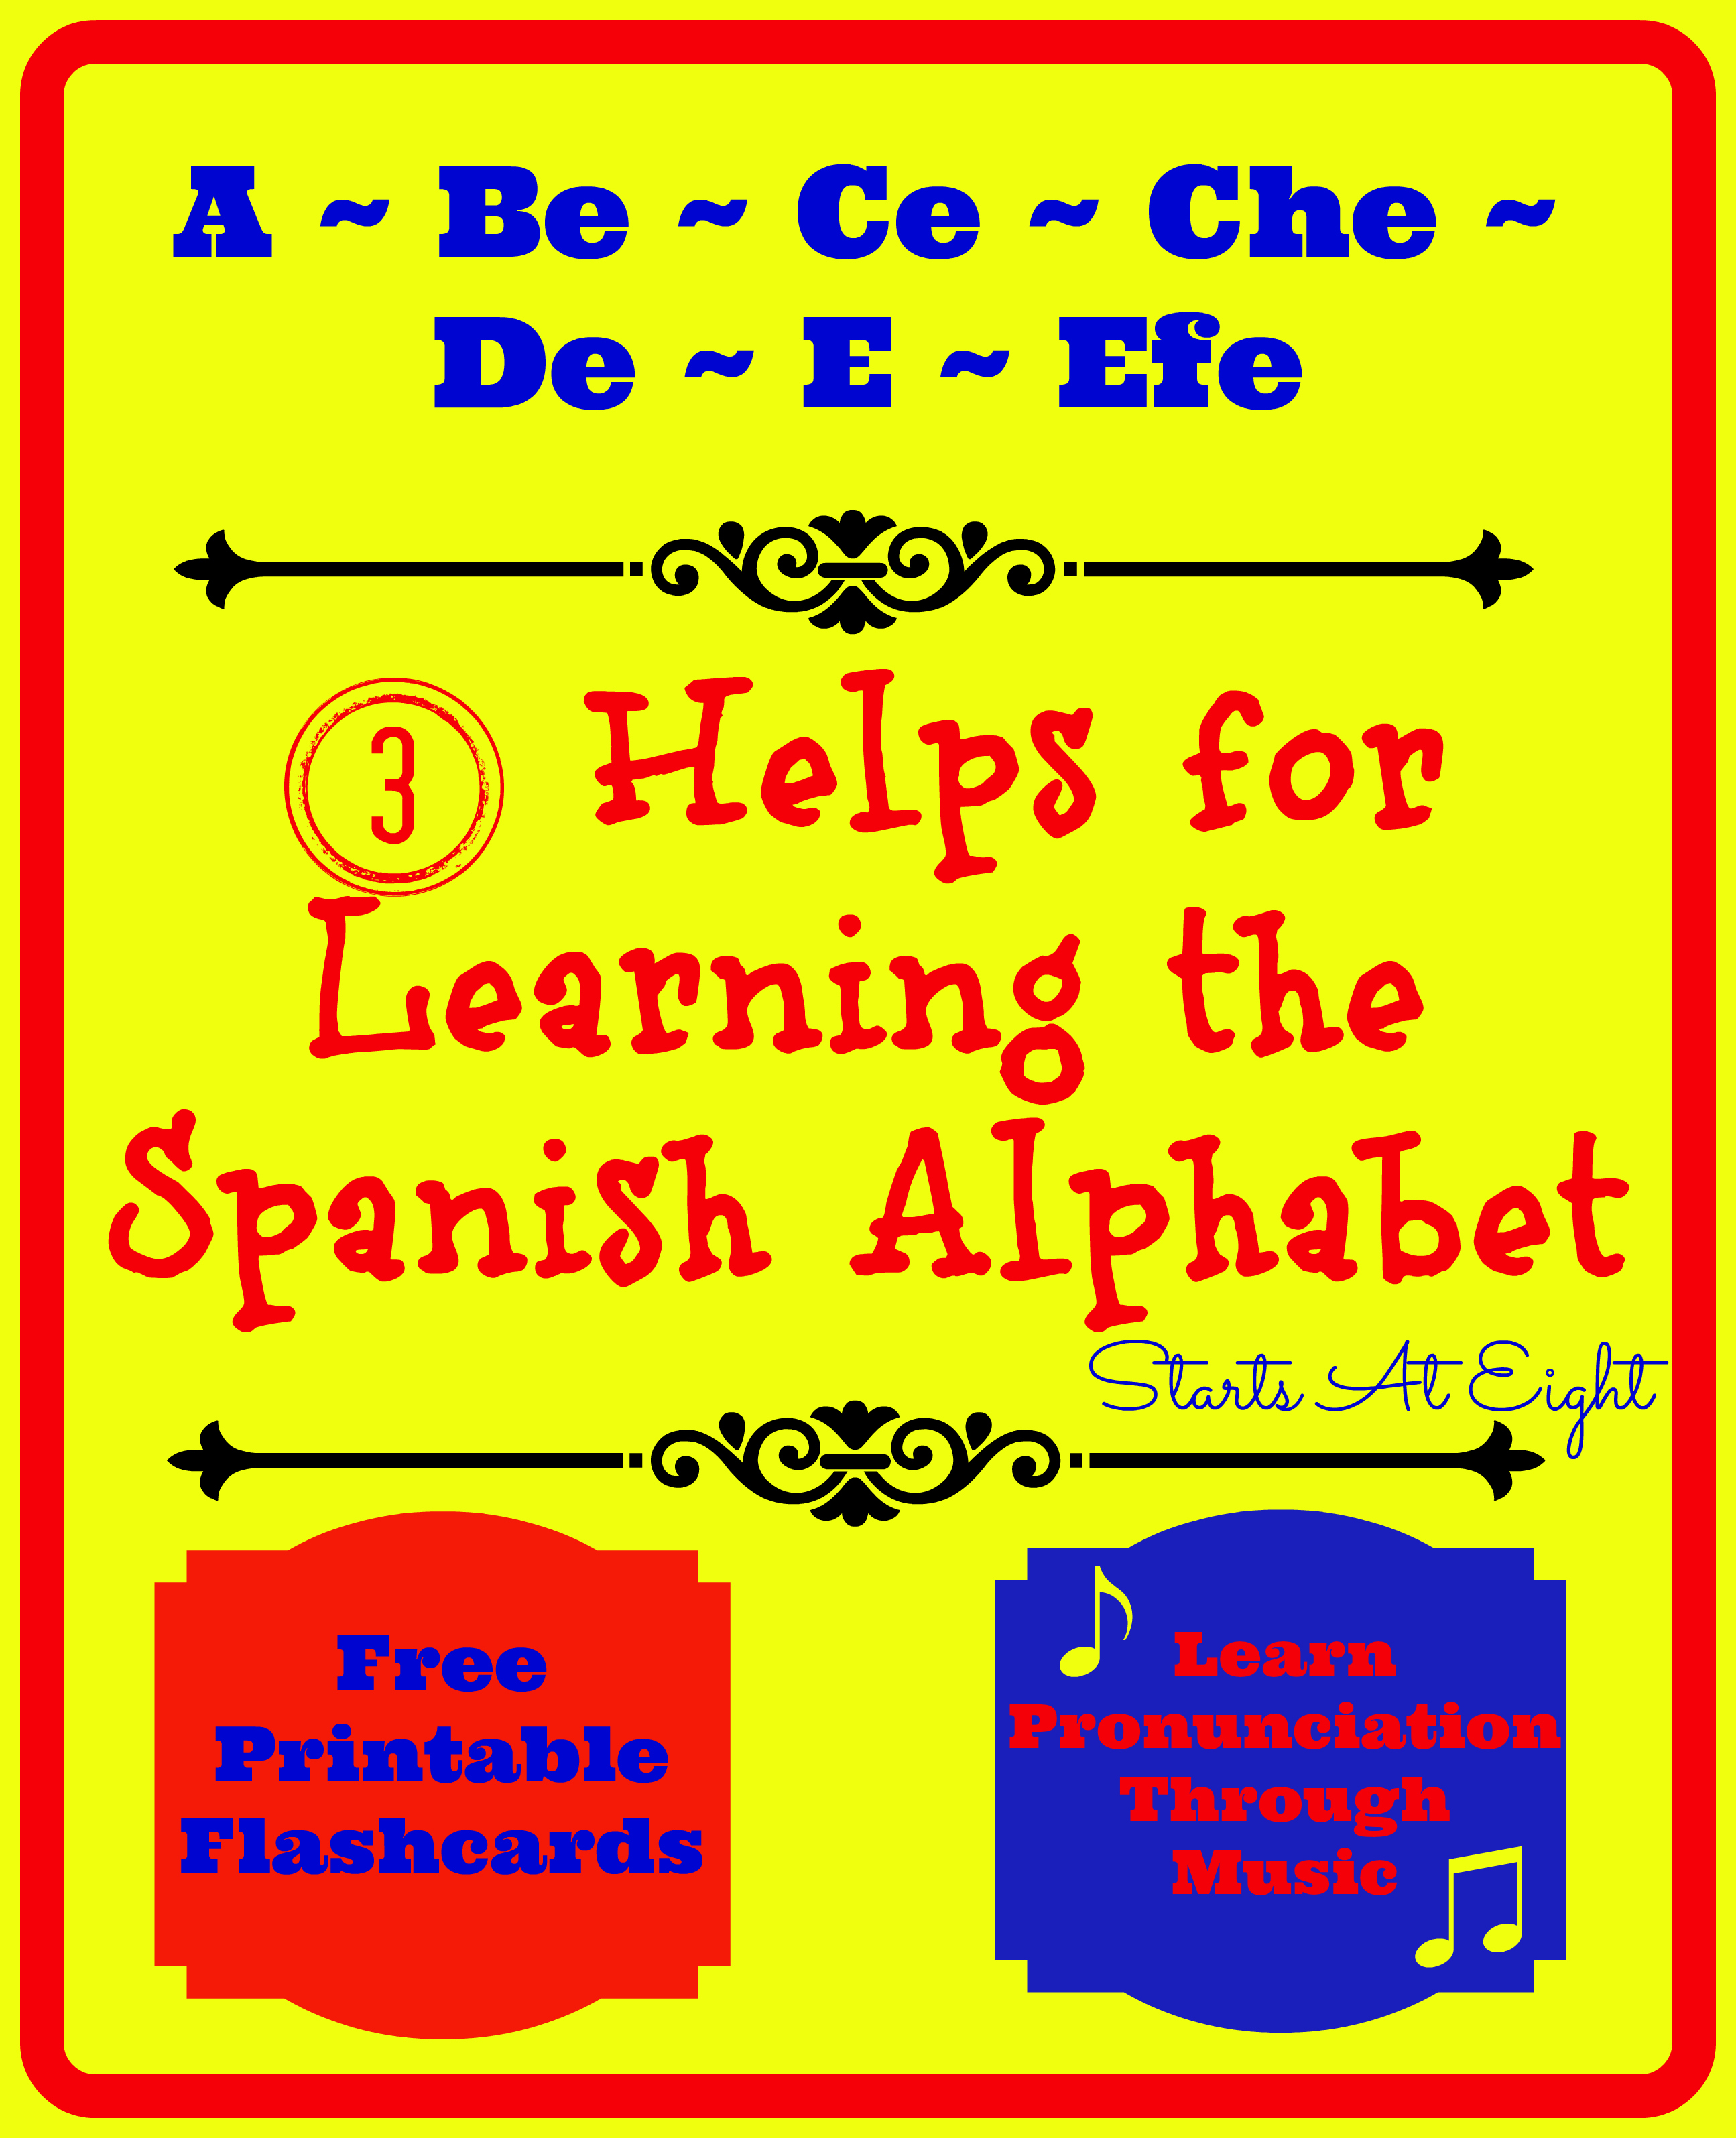 3 Helps For Learning The Spanish Alphabet Startsateight (english pronunciations of daughter from the cambridge advanced learner's dictionary & thesaurus and from the cambridge academic content dictionary, both sources © cambridge university press). startsateight